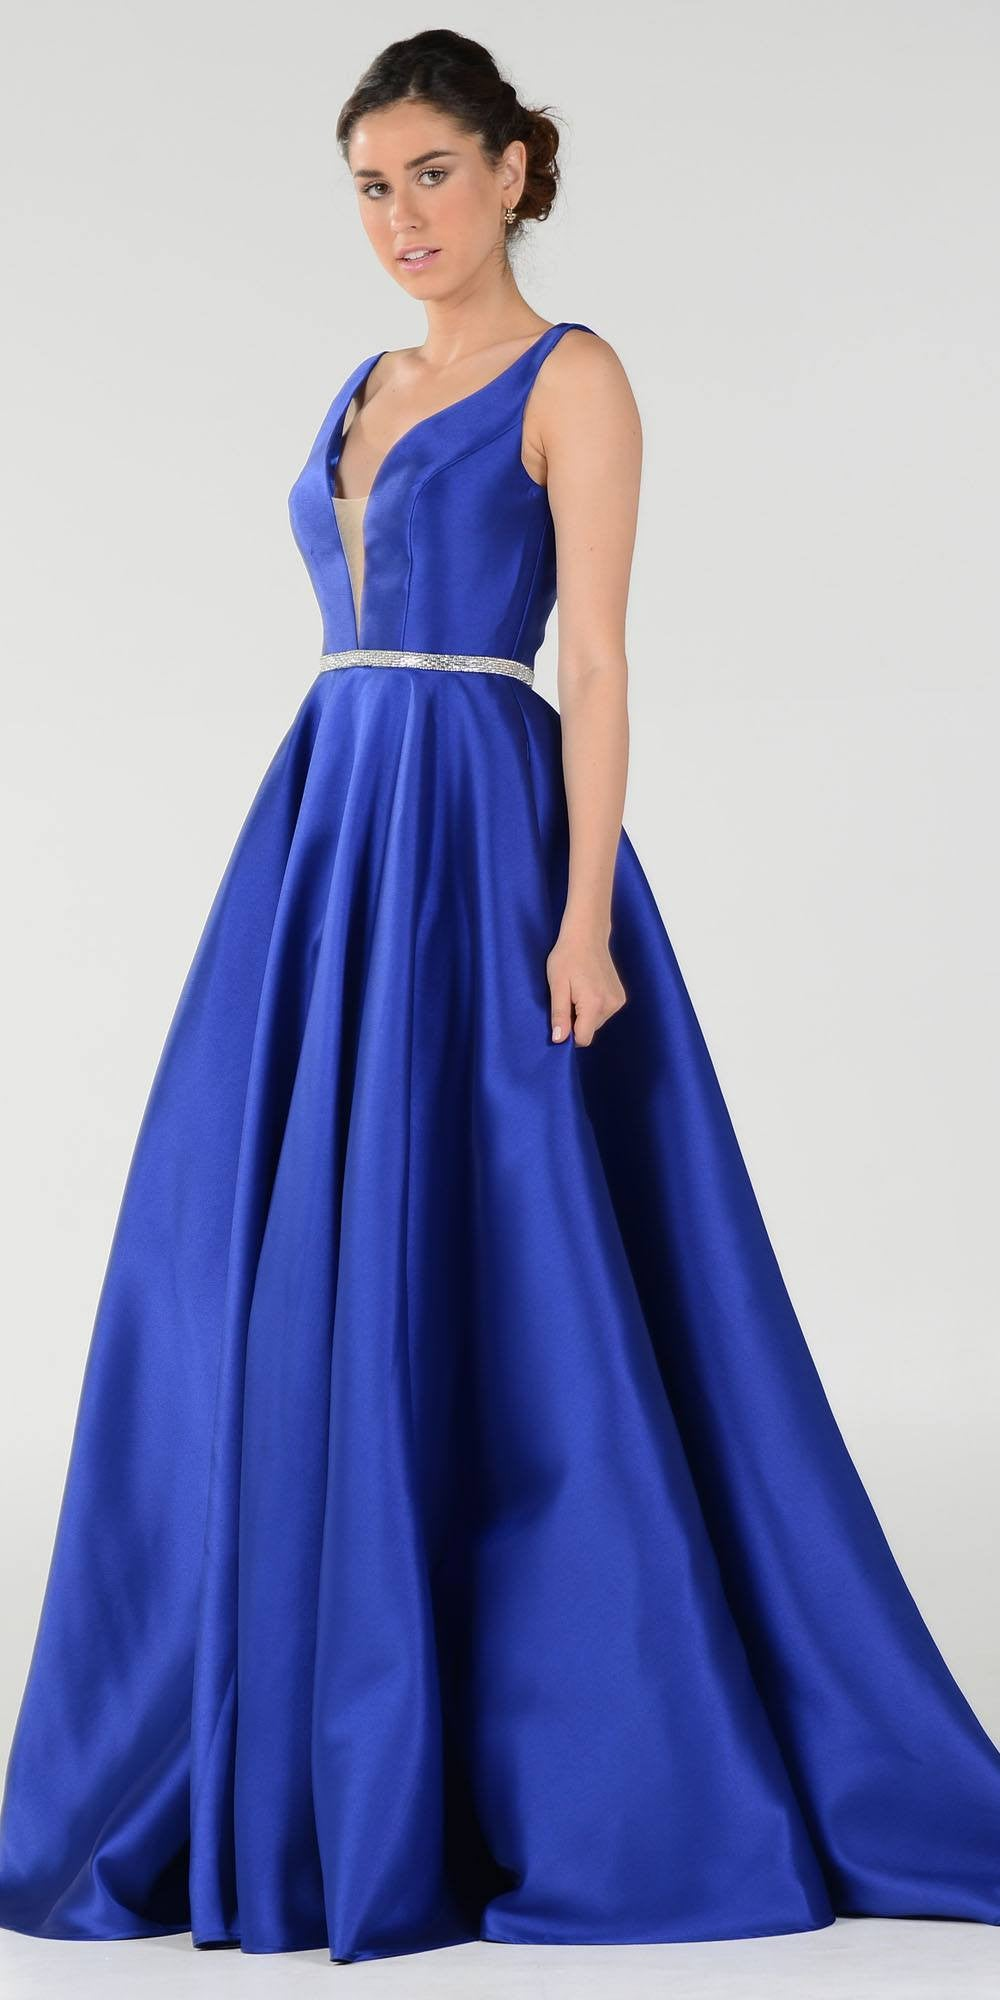 aaa9f2abf0f Royal Blue V-Neck A-Line Mikado Prom Gown with Embellished Waist. Tap to  expand